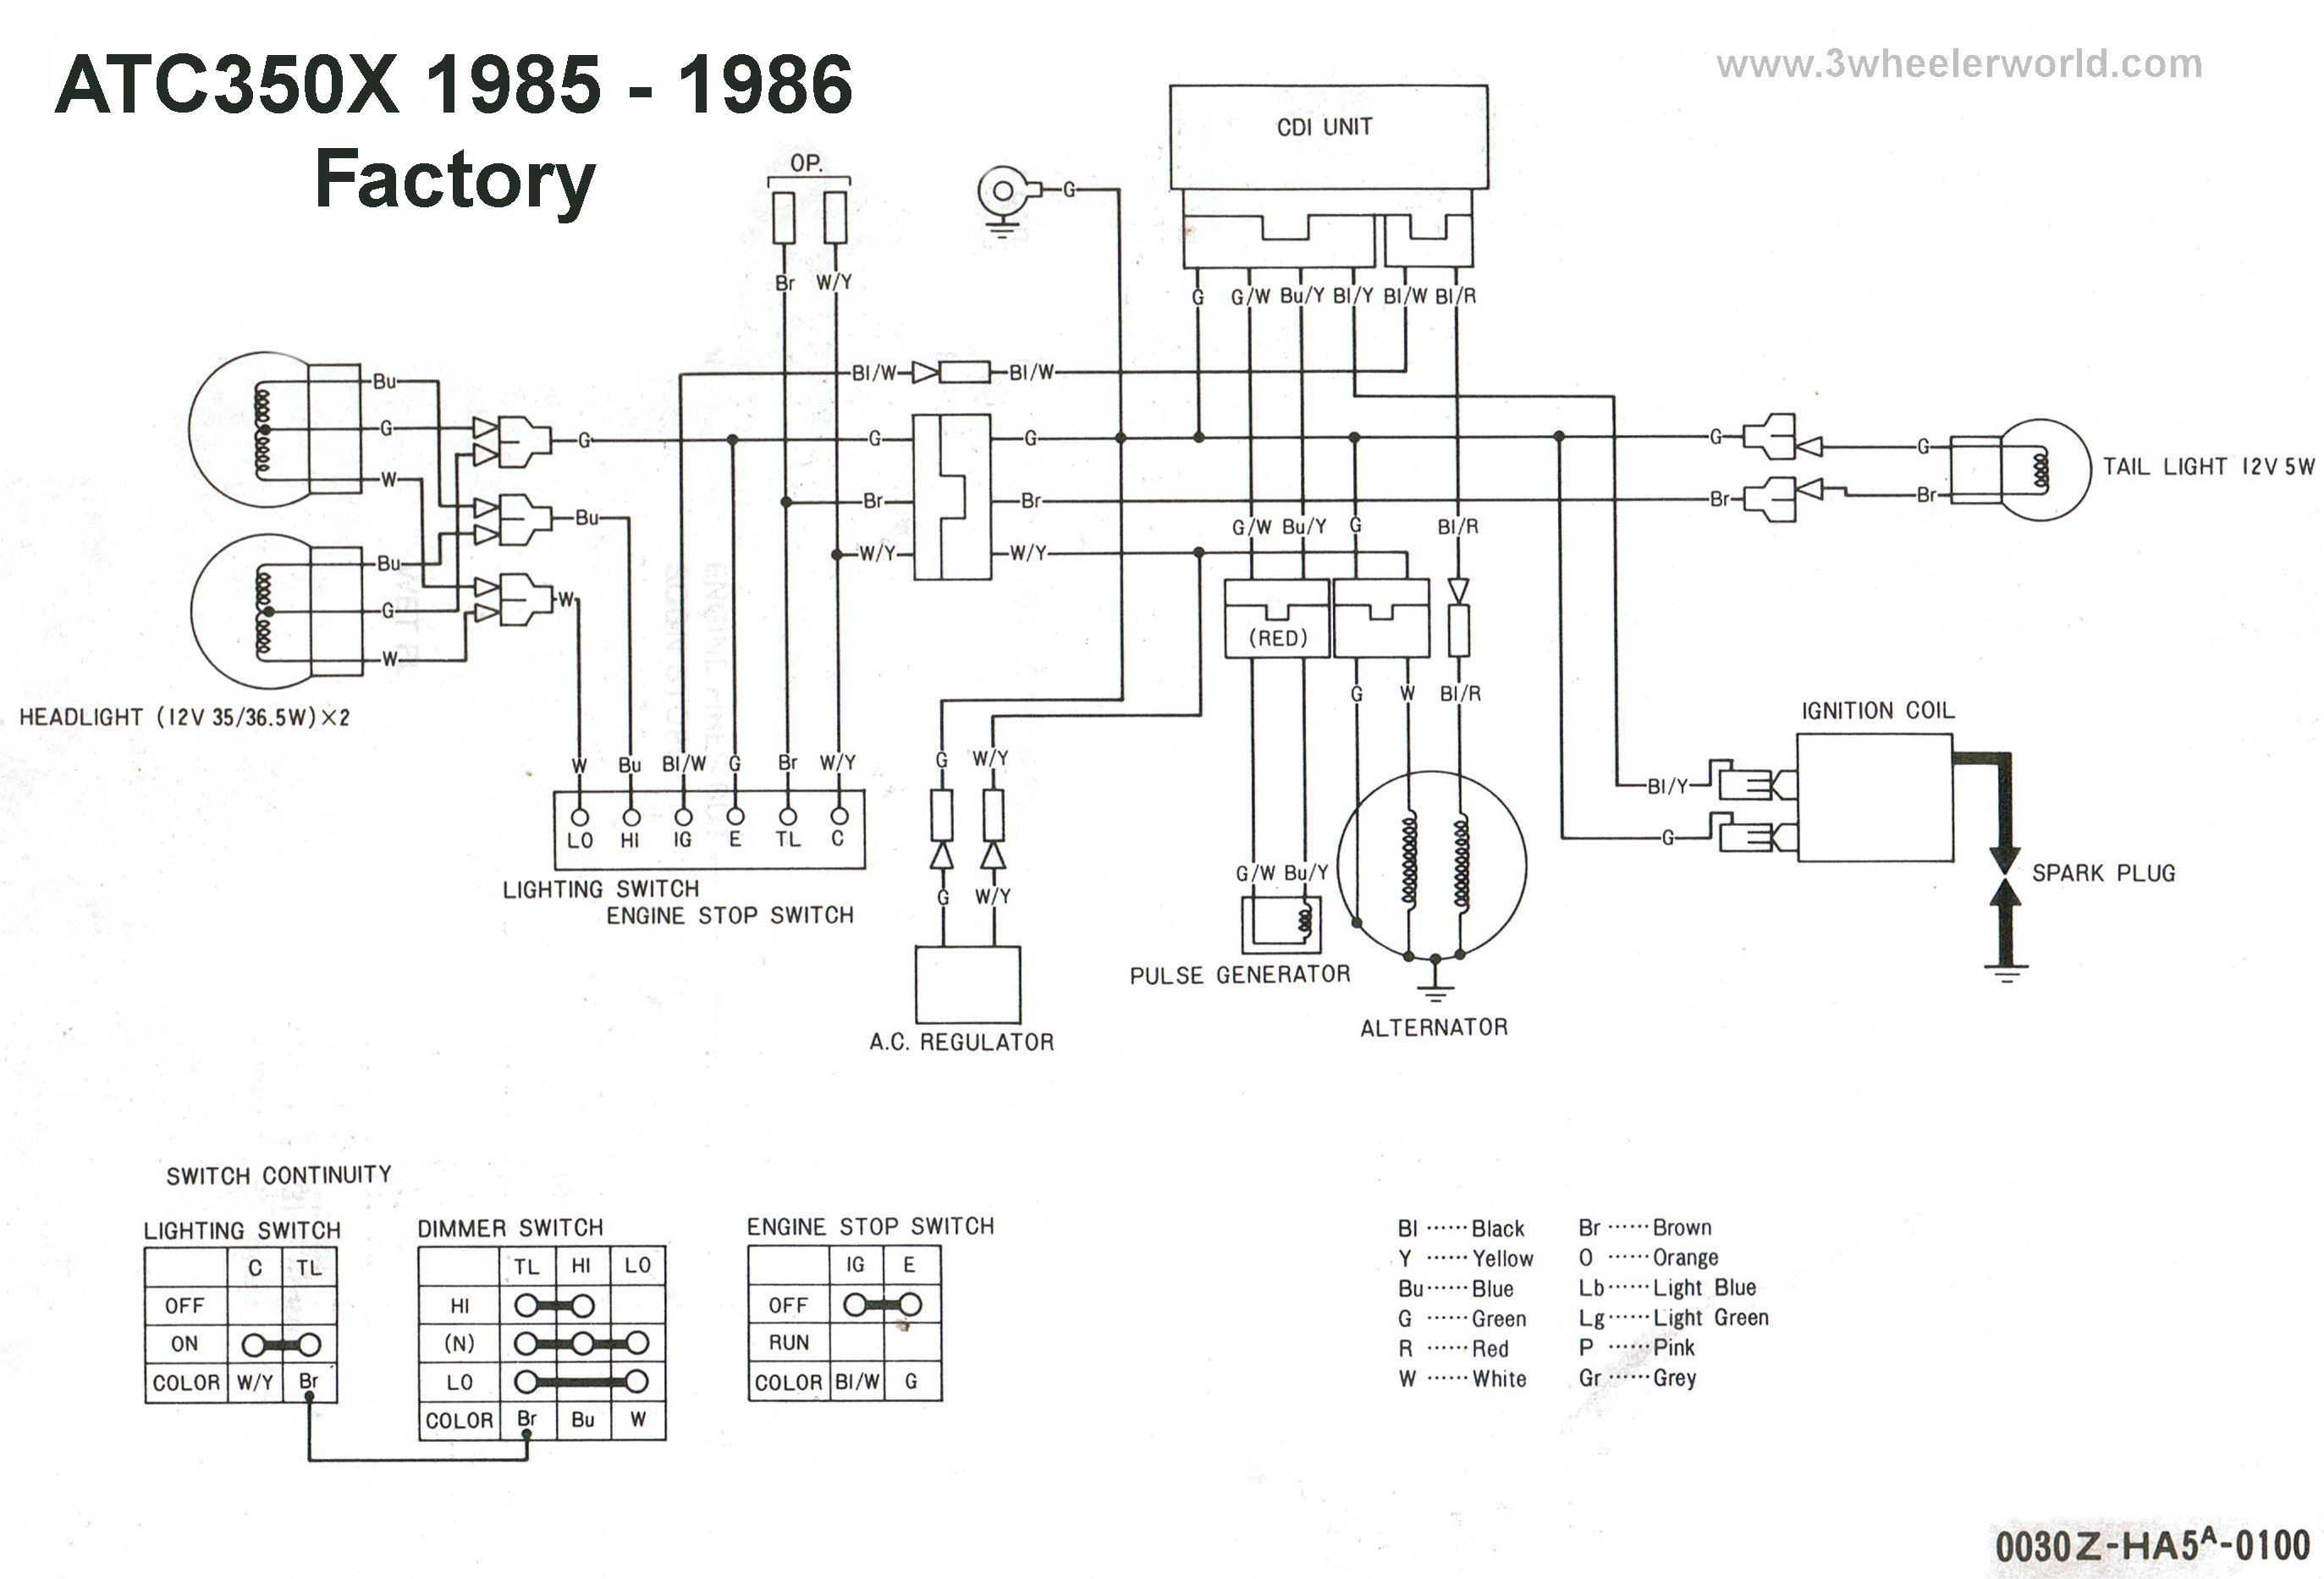 ATC350Xx85Thru86 98 honda fourtrax diagrams wiring diagram simonand trx350 wiring diagram 1987 at gsmportal.co